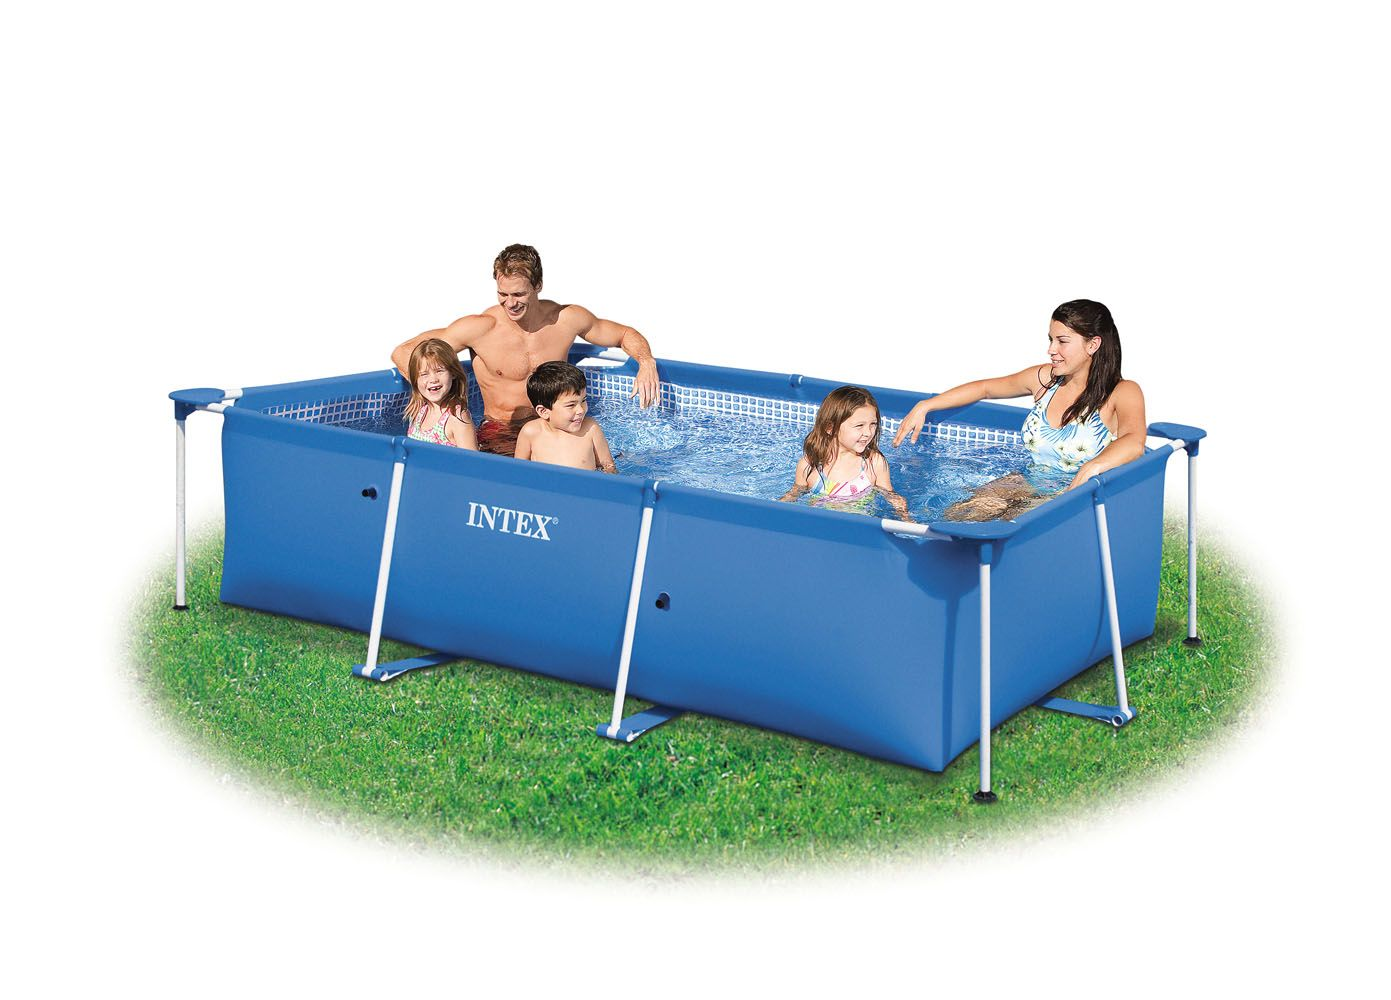 Piscine rectangulaire hors sol intex intex - Piscine hors sol intex ...